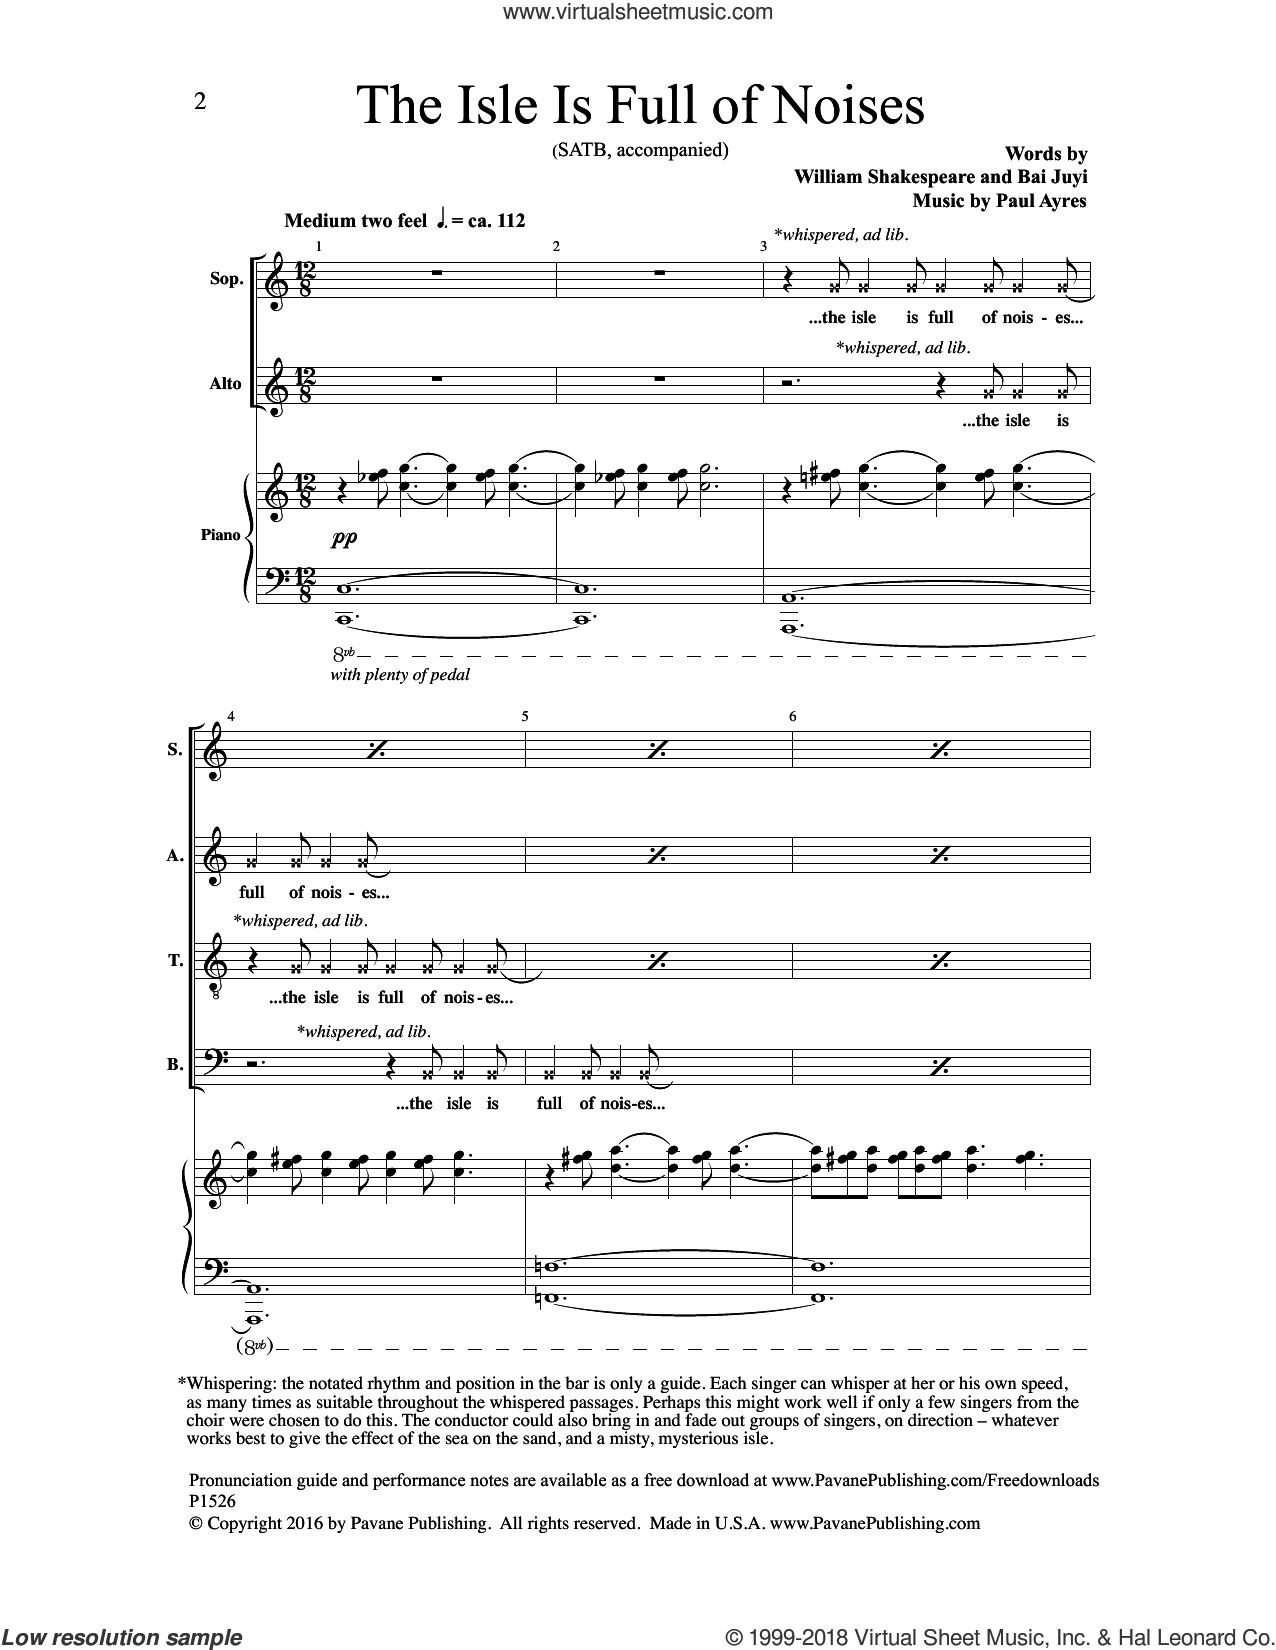 The Isle Is Full of Noises sheet music for choir by Paul Ayres, Bai Juyi and William Shakespeare, intermediate skill level